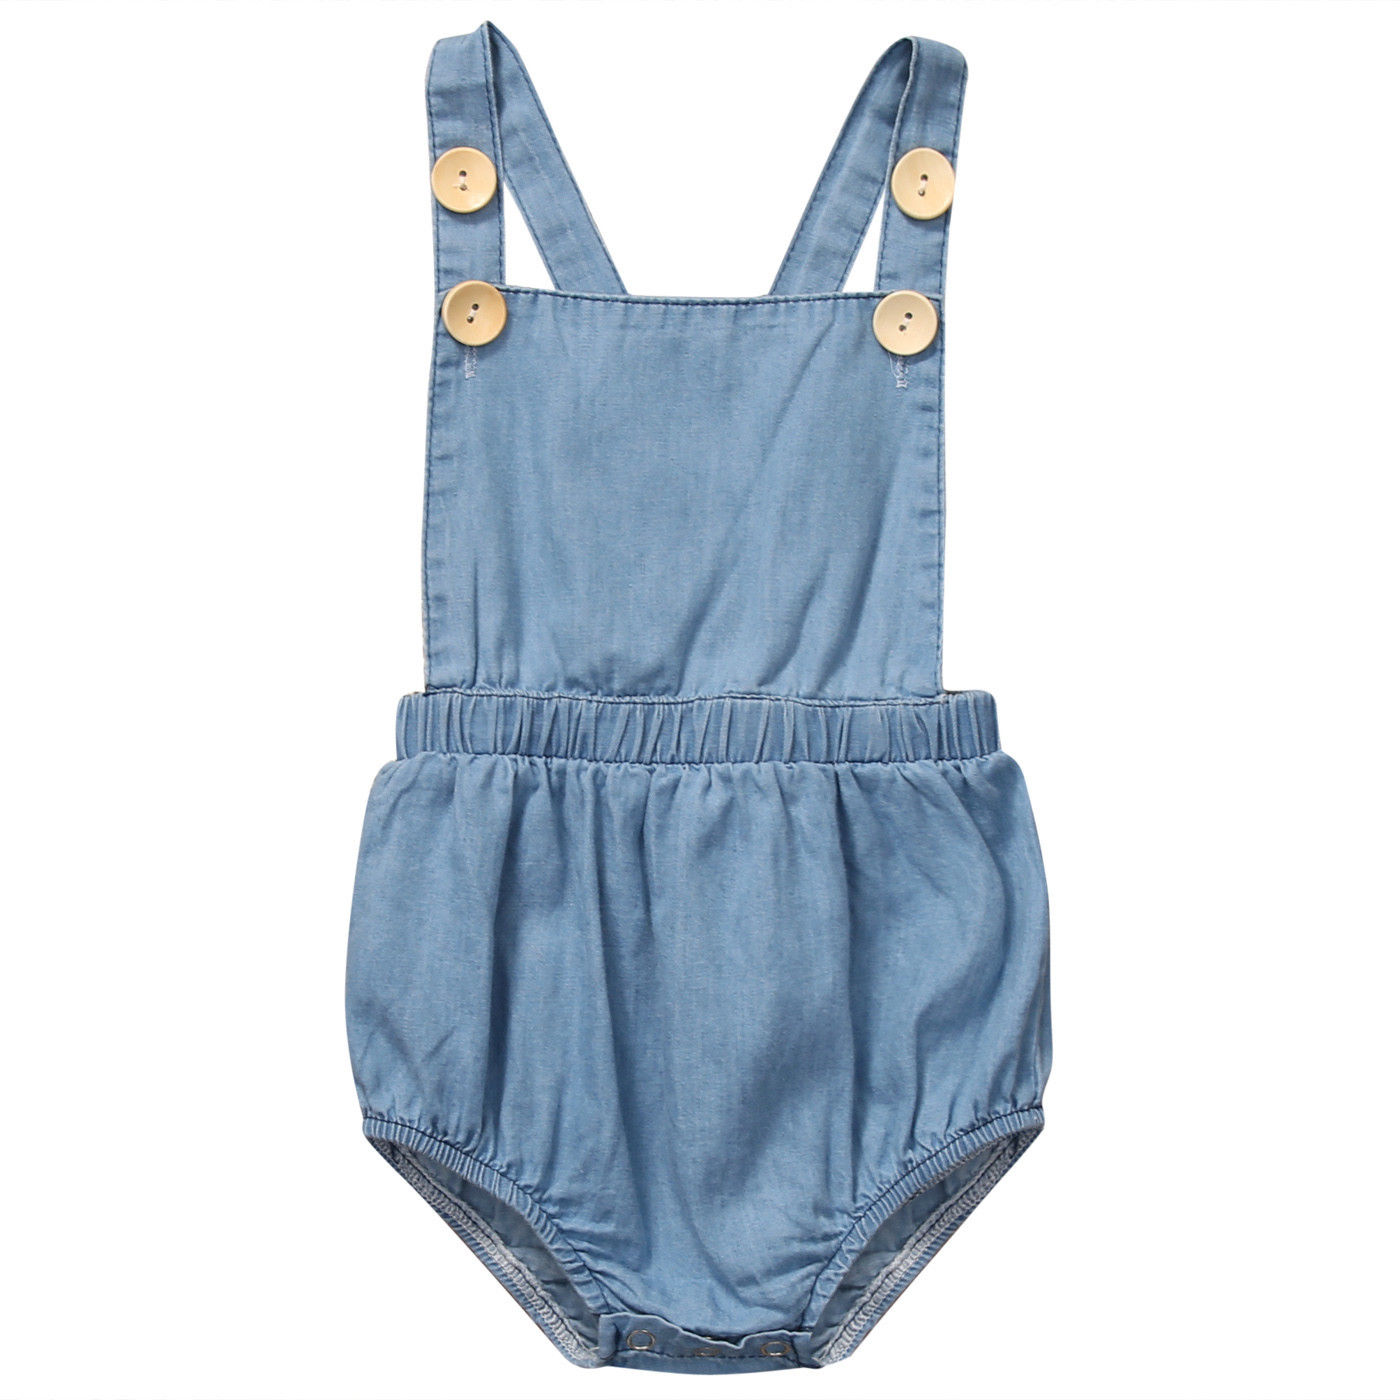 Newborn Baby Girls Denim Romper Jumpsuit Outfits Playsuit Sunsuit One-Pieces Clothes polka dot baby girls clothes backless flounced kid girls rompers jumpsuit playsuit one pieces outfits 0 18m blue pink purple